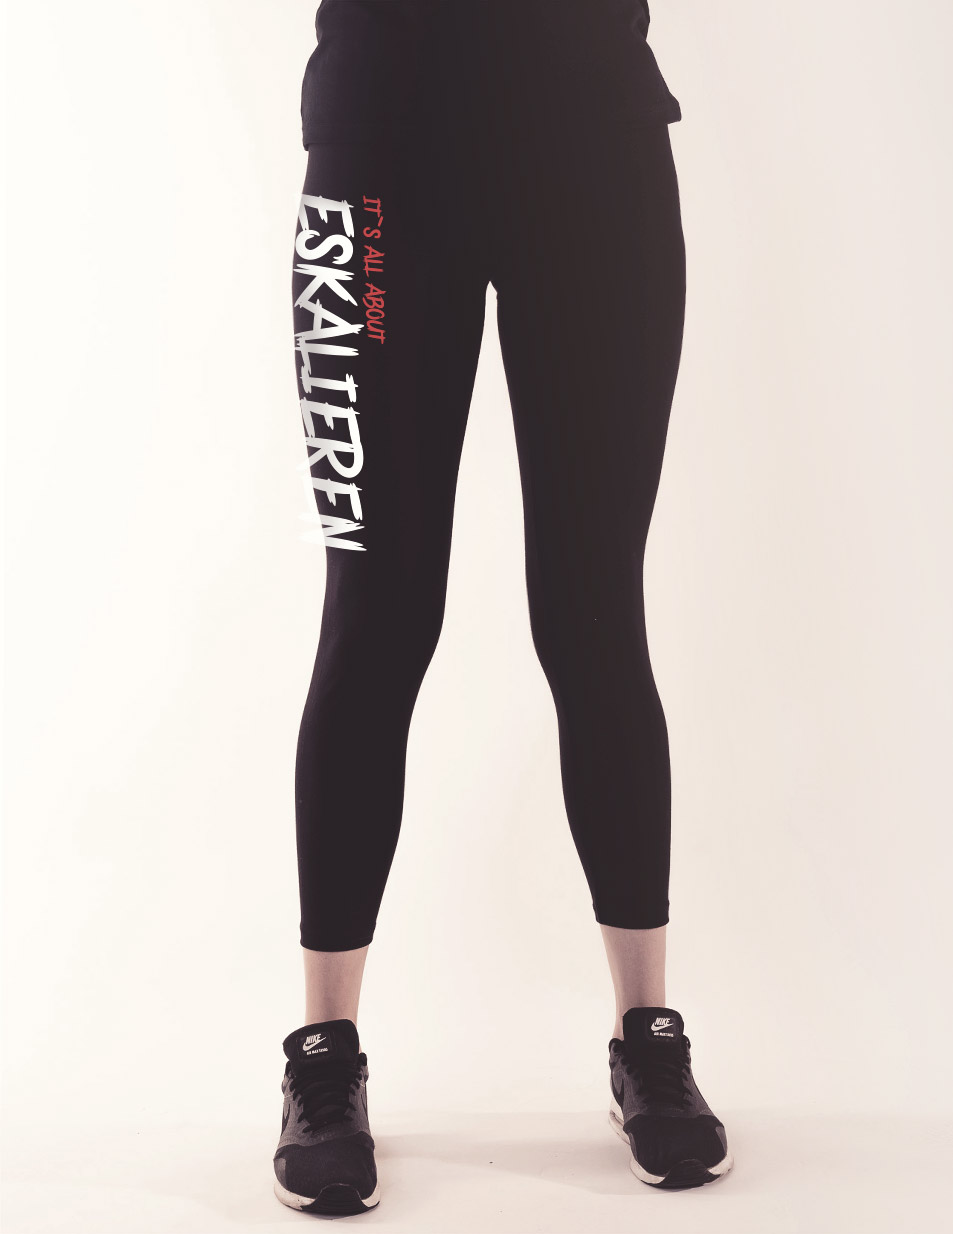 Its all about Eskalieren Leggings